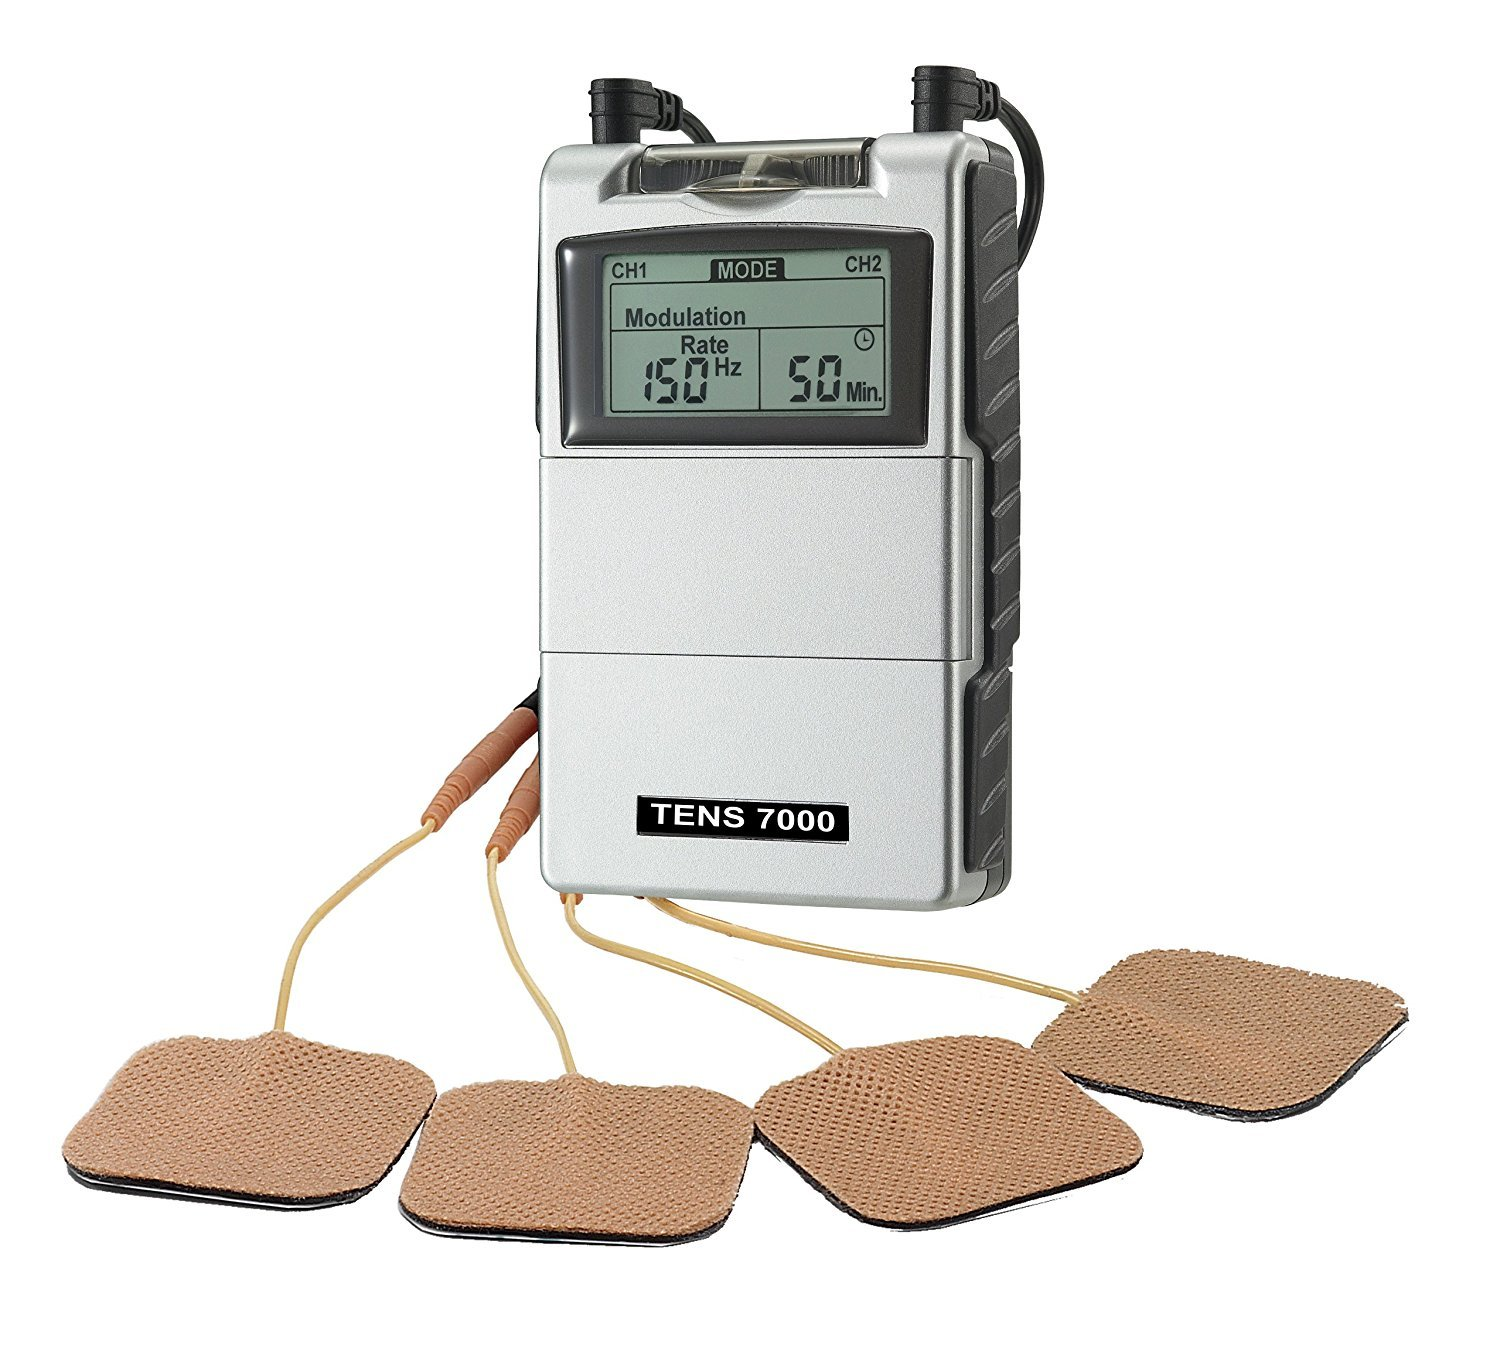 United Surgical Tens 7000 Tens Unit - Tens Machine for Pain Management, Back Pain and Rehabilitation